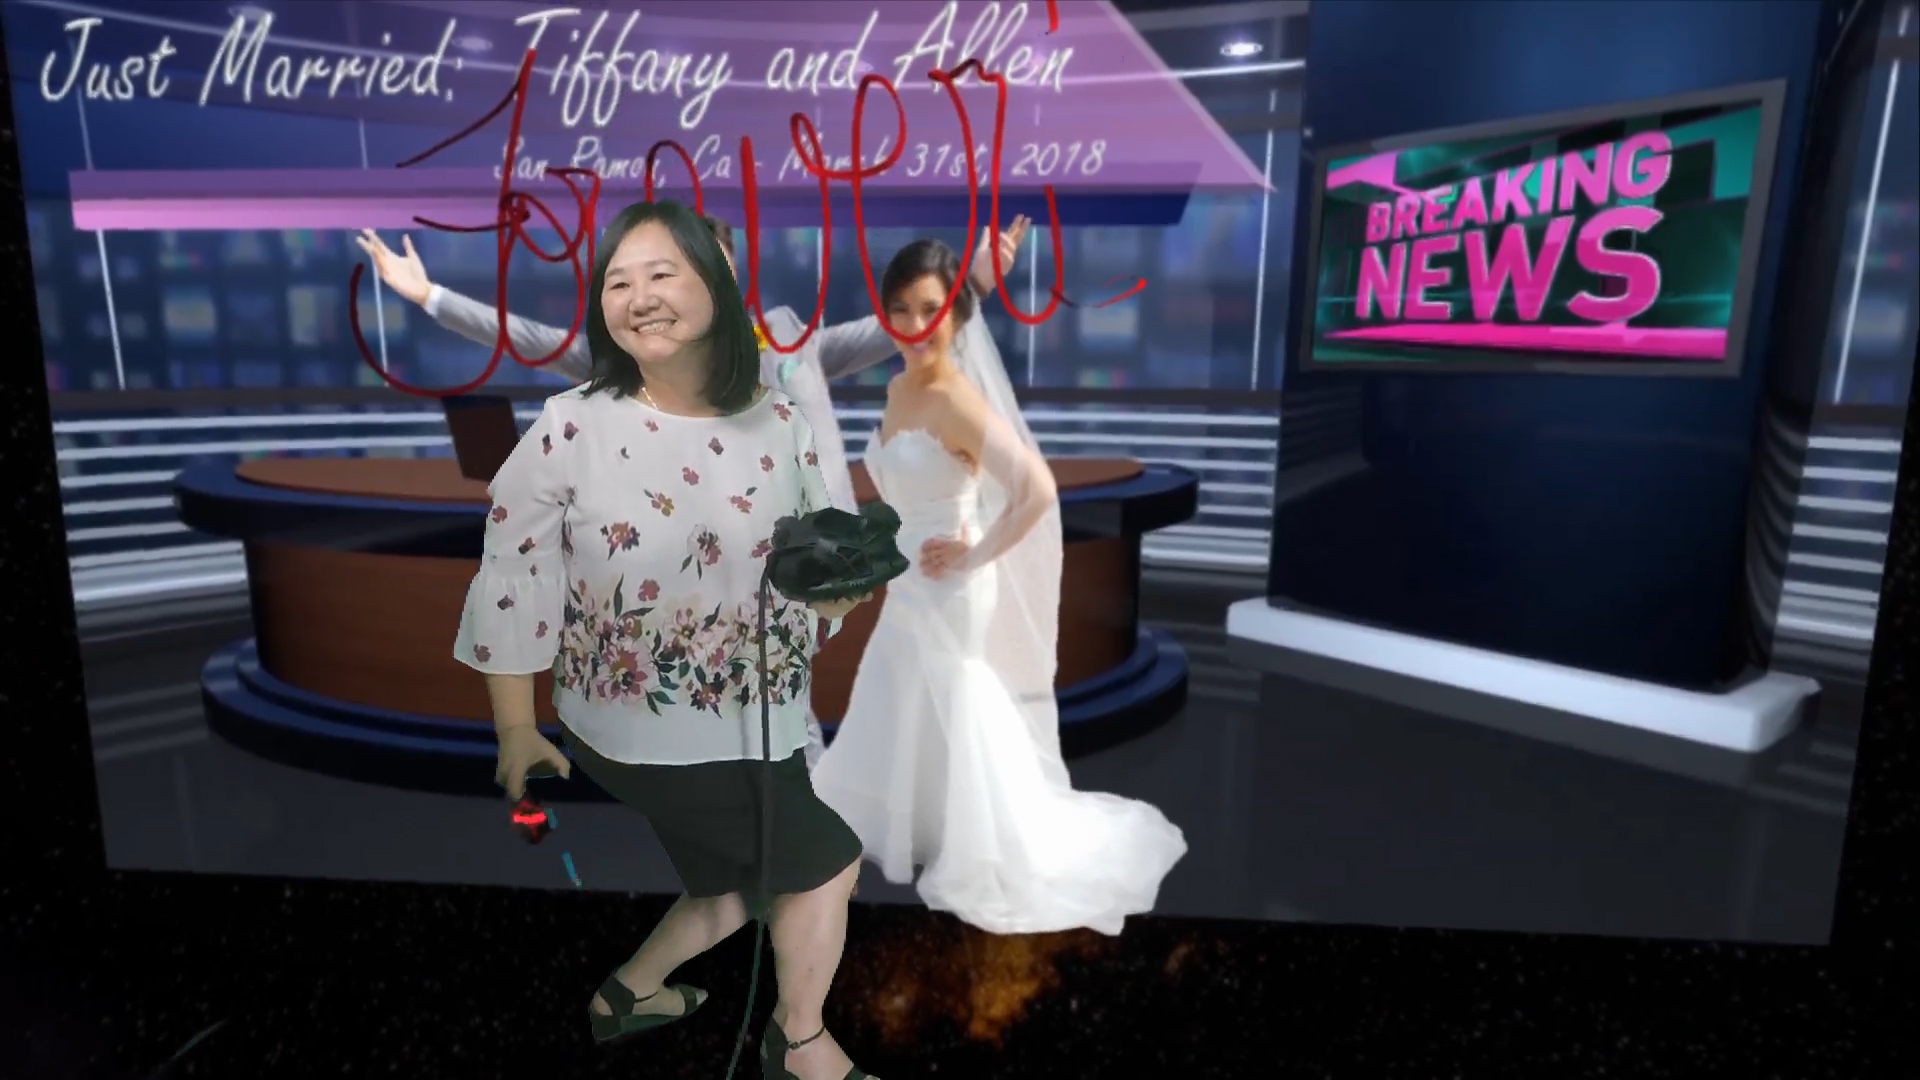 woman-flower-top-newsroom-forever-virtual-reality-guestbook.jpg